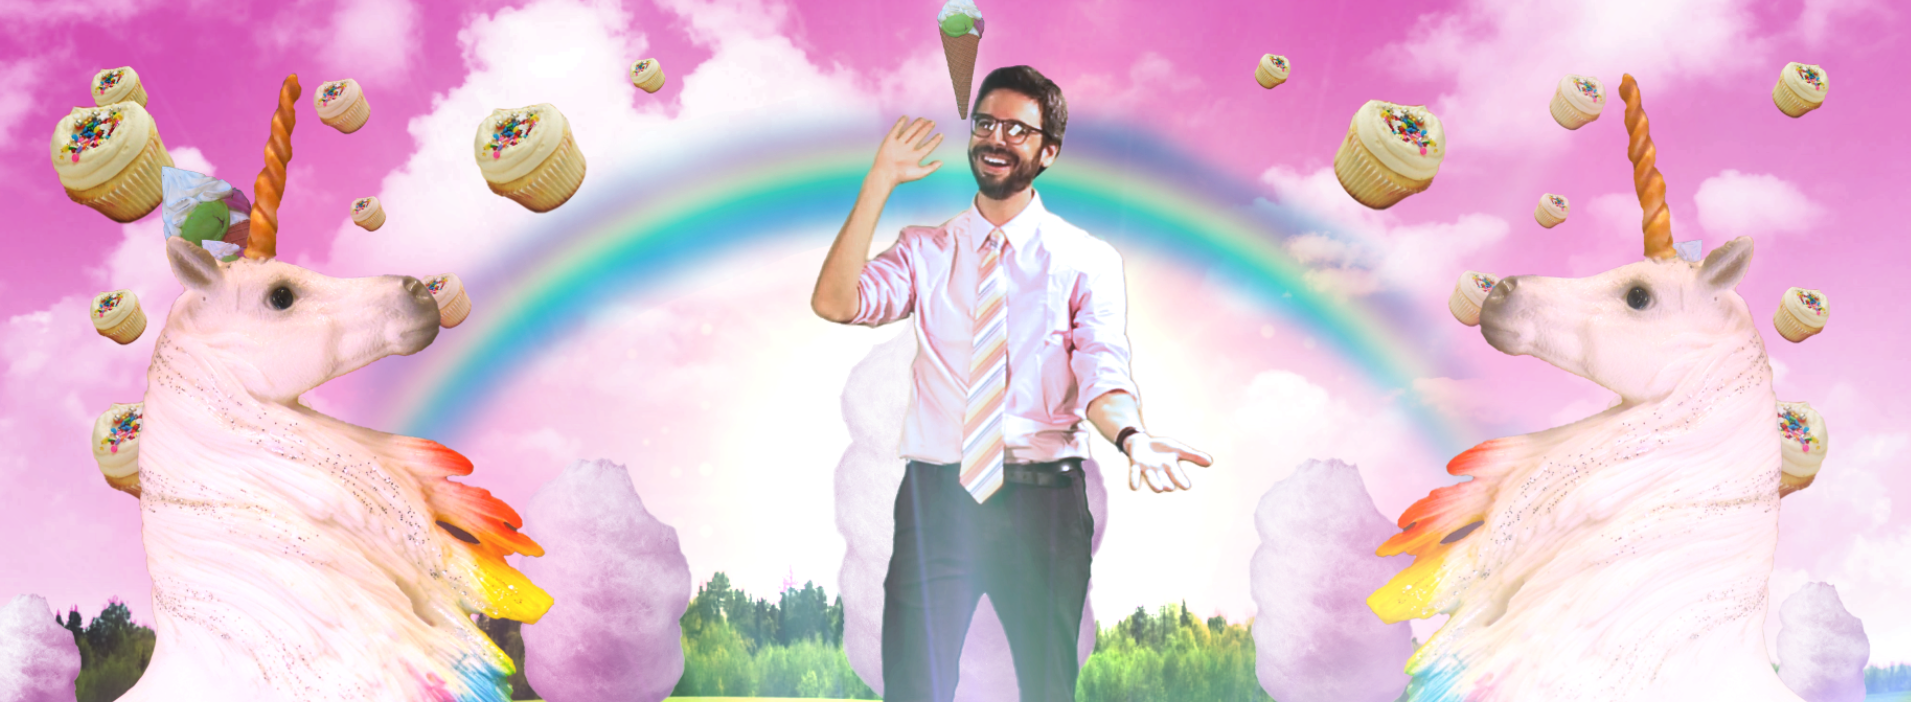 A smiling man in glasses and a pink shirt stands within an animation of rainbows, unicorns, and cupcakes.